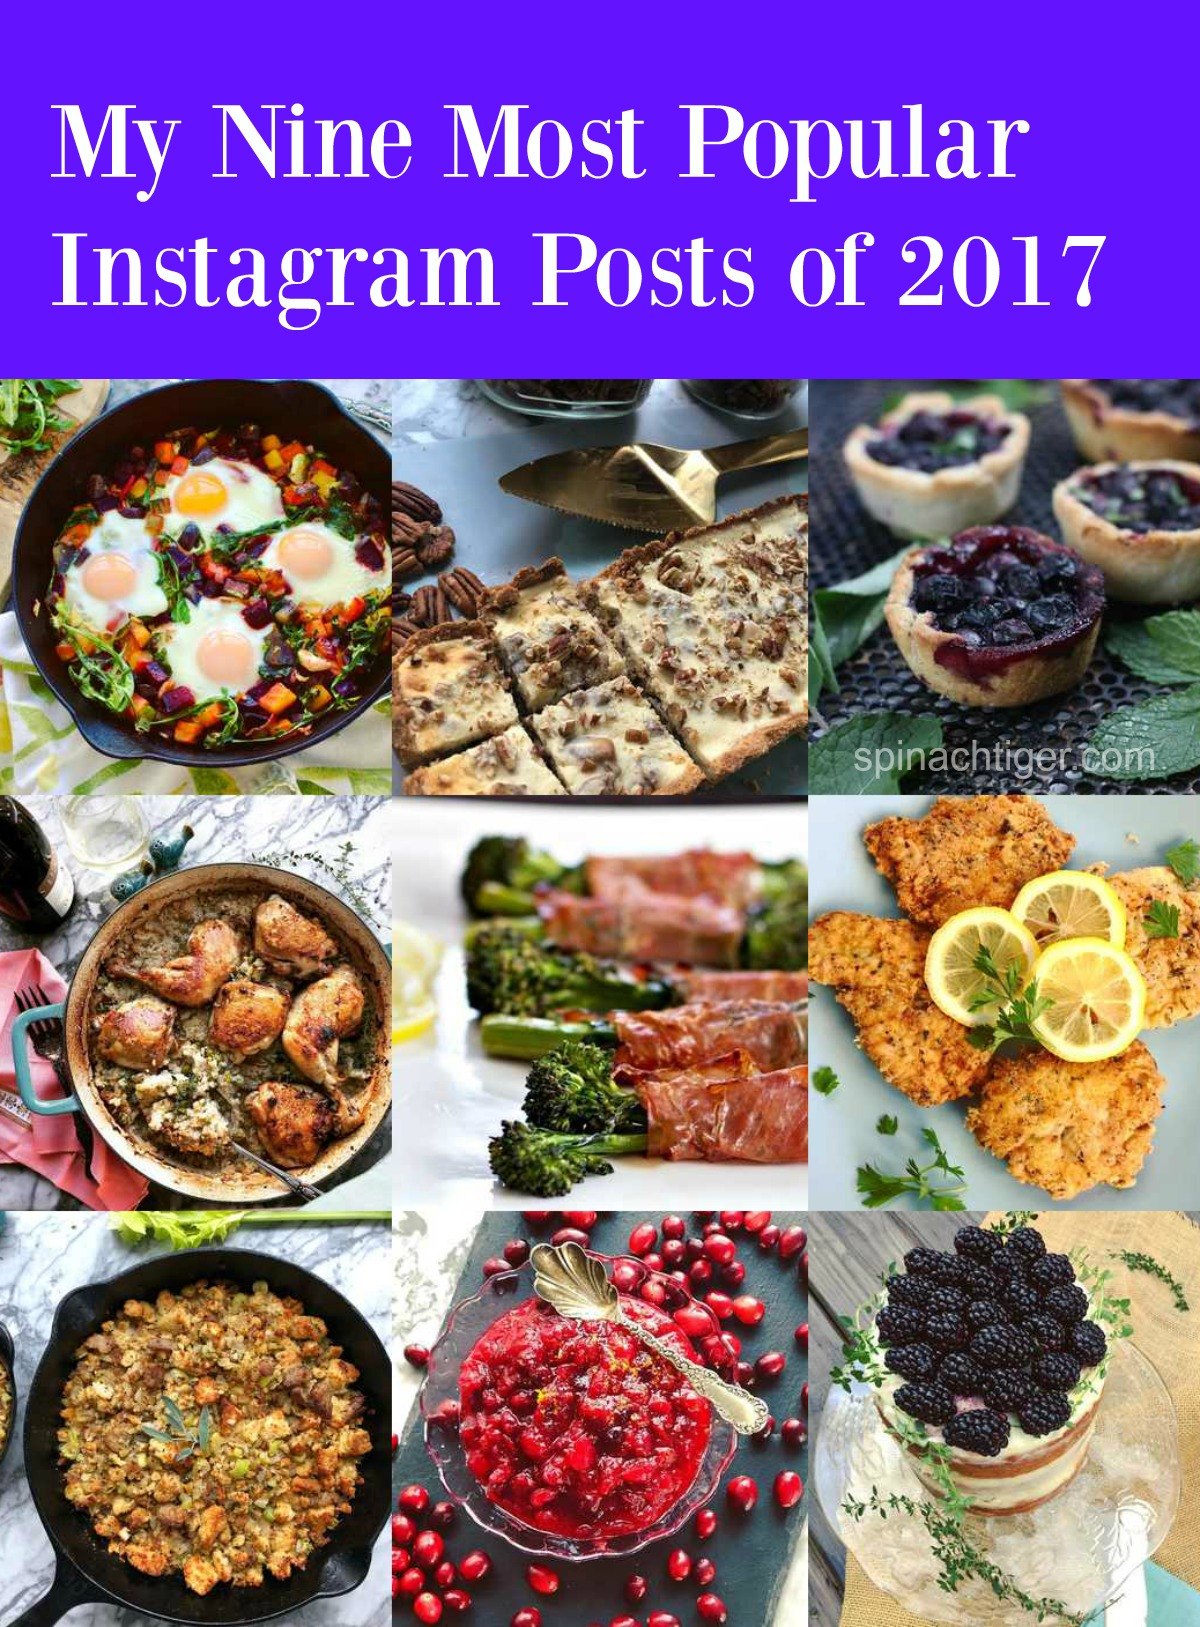 My most popular instagram recipe posts of 2017 from Spinach Tiger